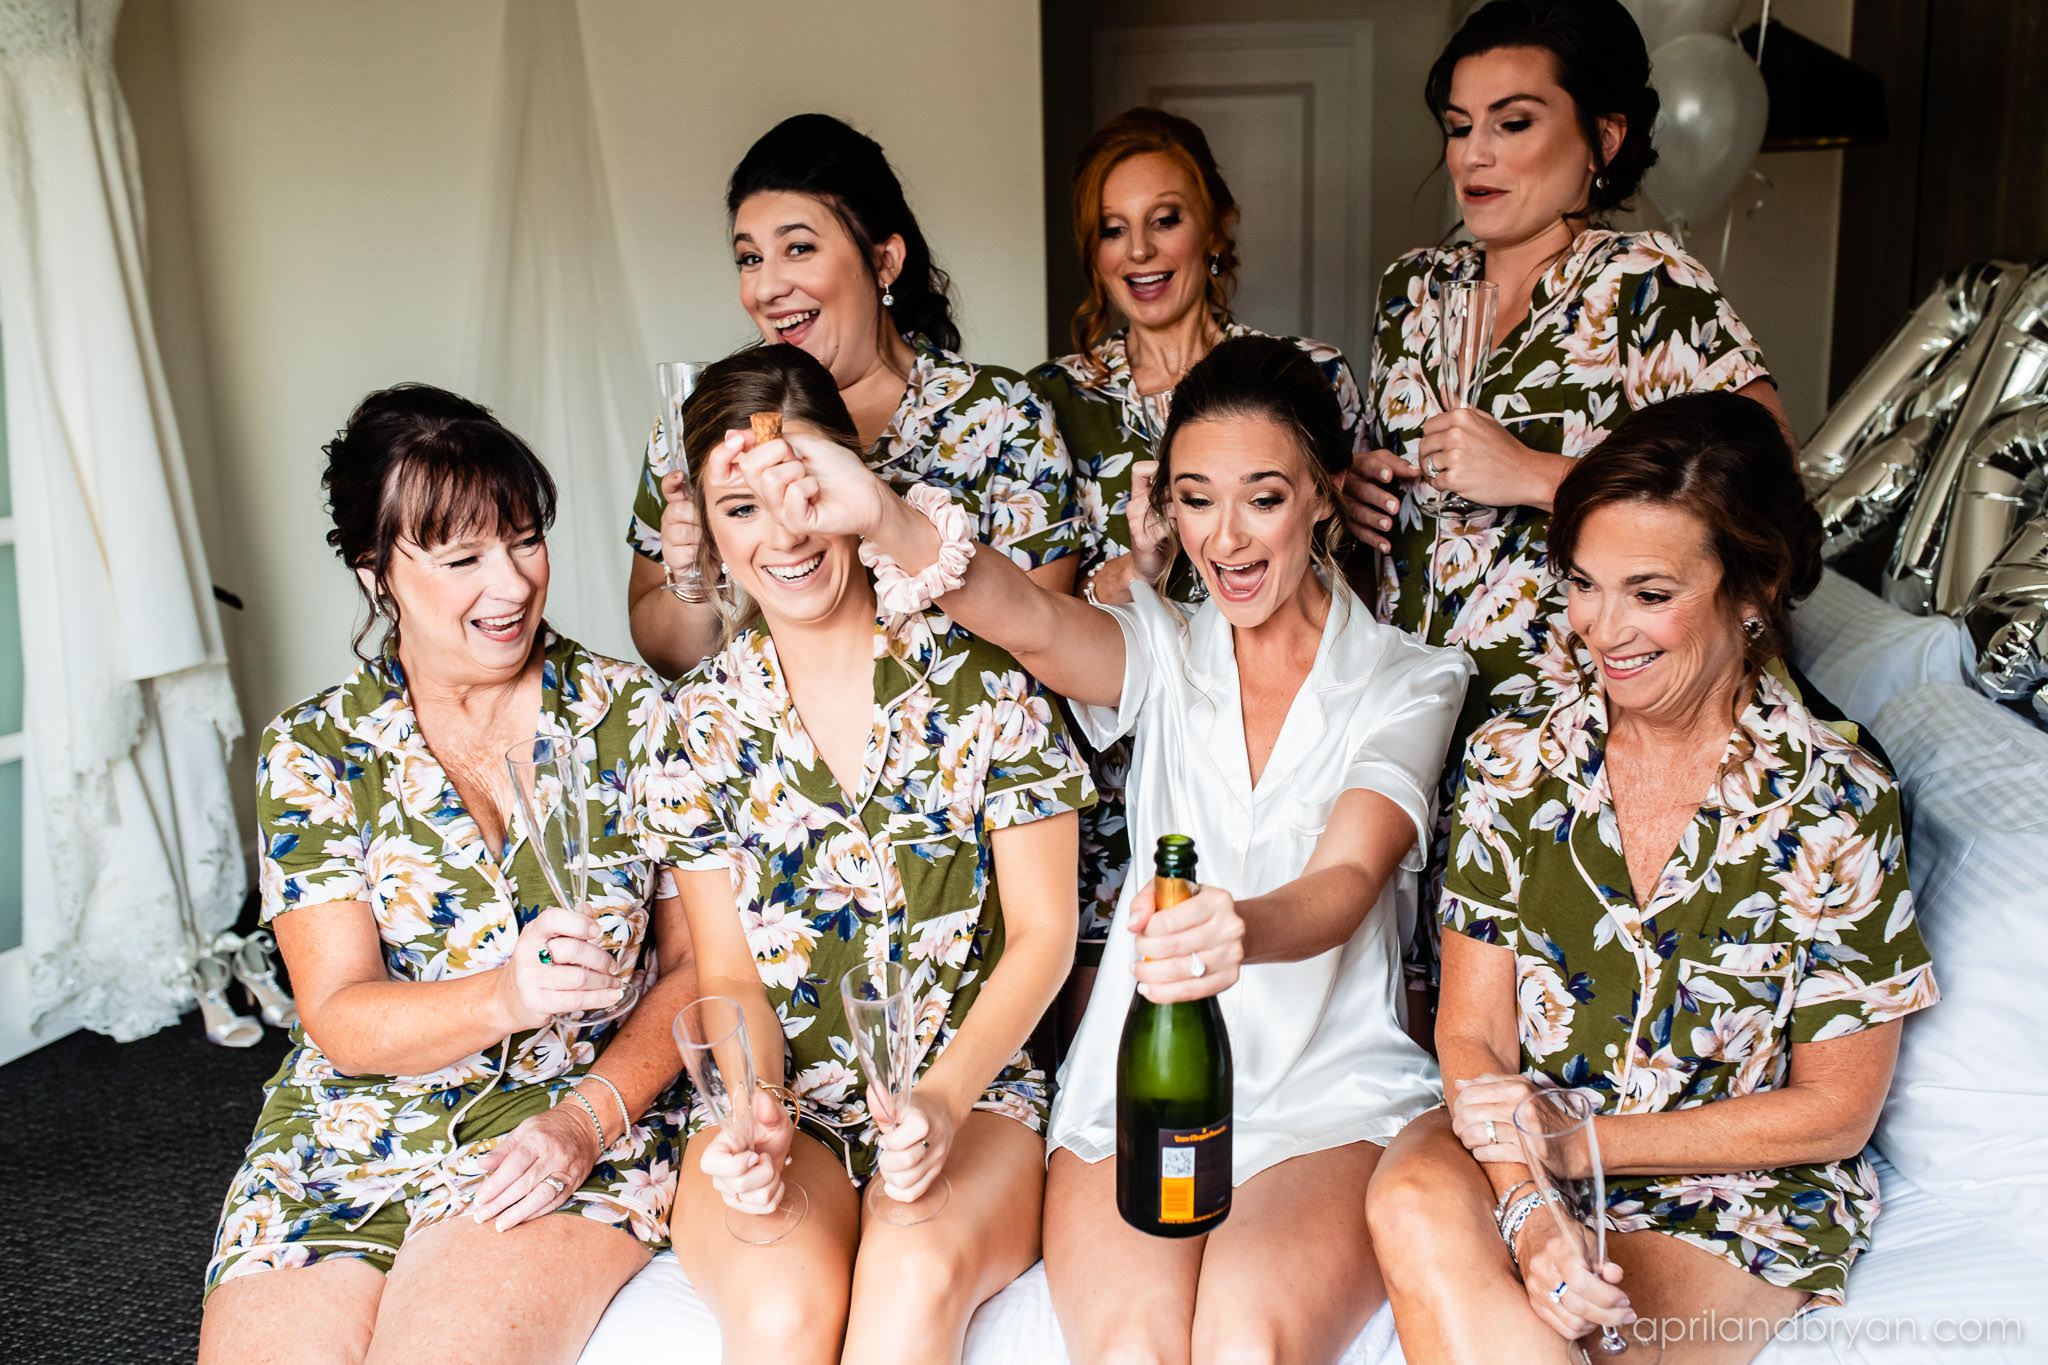 The bridal party pops champagne in the bridal suite at the Franklin Institute in Philadelphia, PA. Captured by April & Bryan Photography. Featured on Dream Weddings.